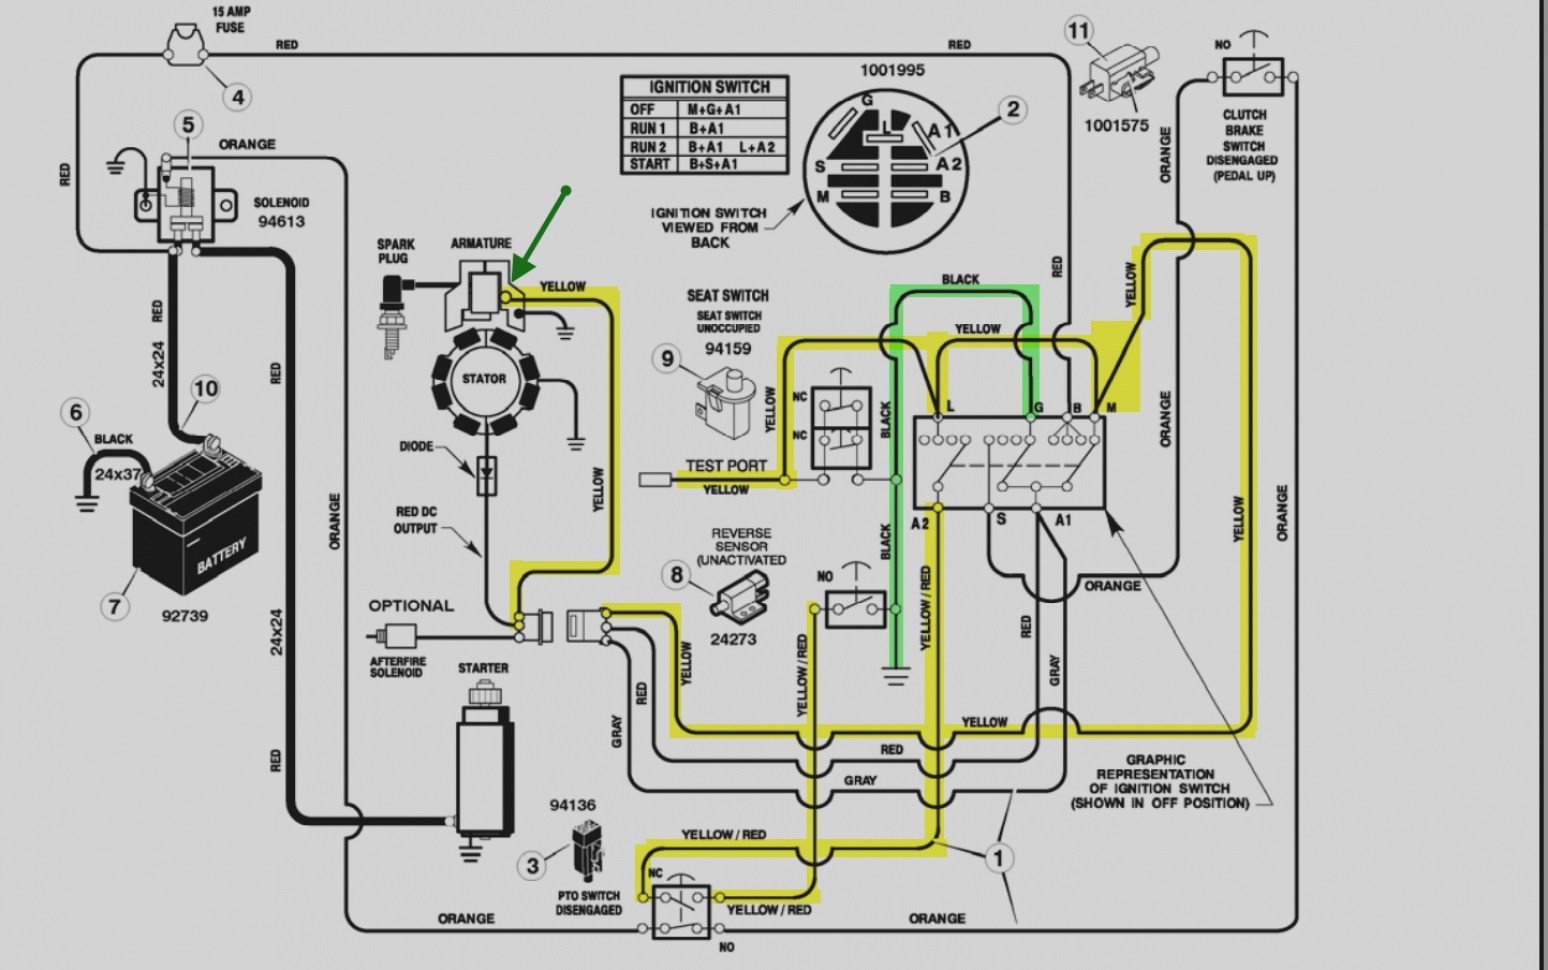 briggs and stratton charging system wiring diagram chevy 350 5 7 tbi engine diagrams library 27hp free rh xwiaw us voltage regulator